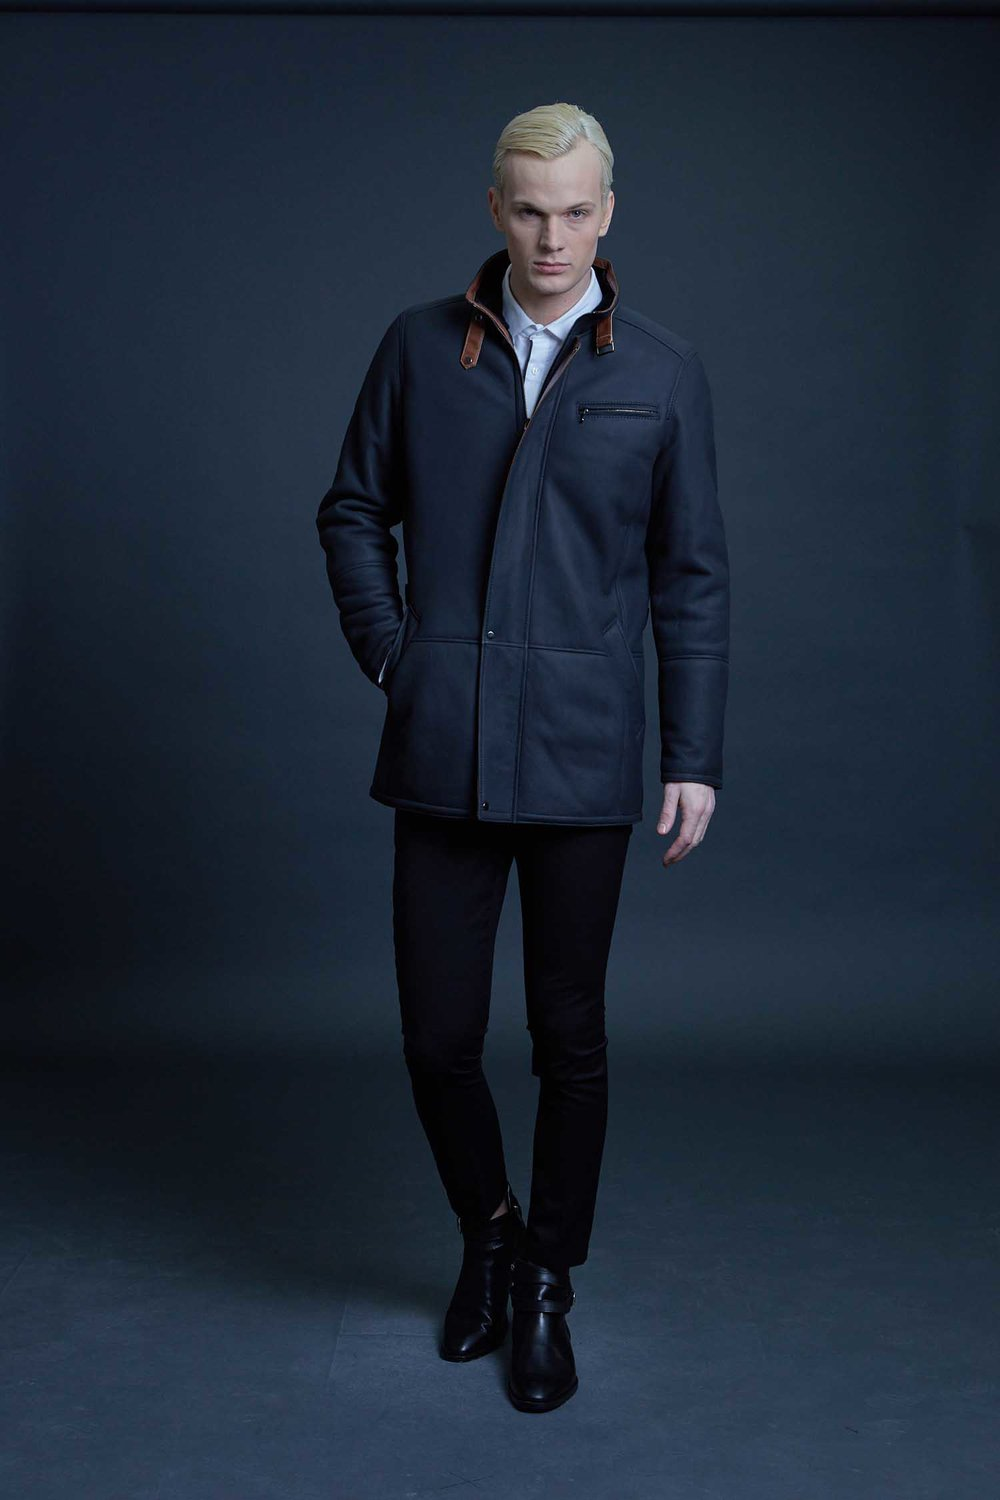 pat-flesher-furs-coat-blue-collar-leather-beige-men.jpg